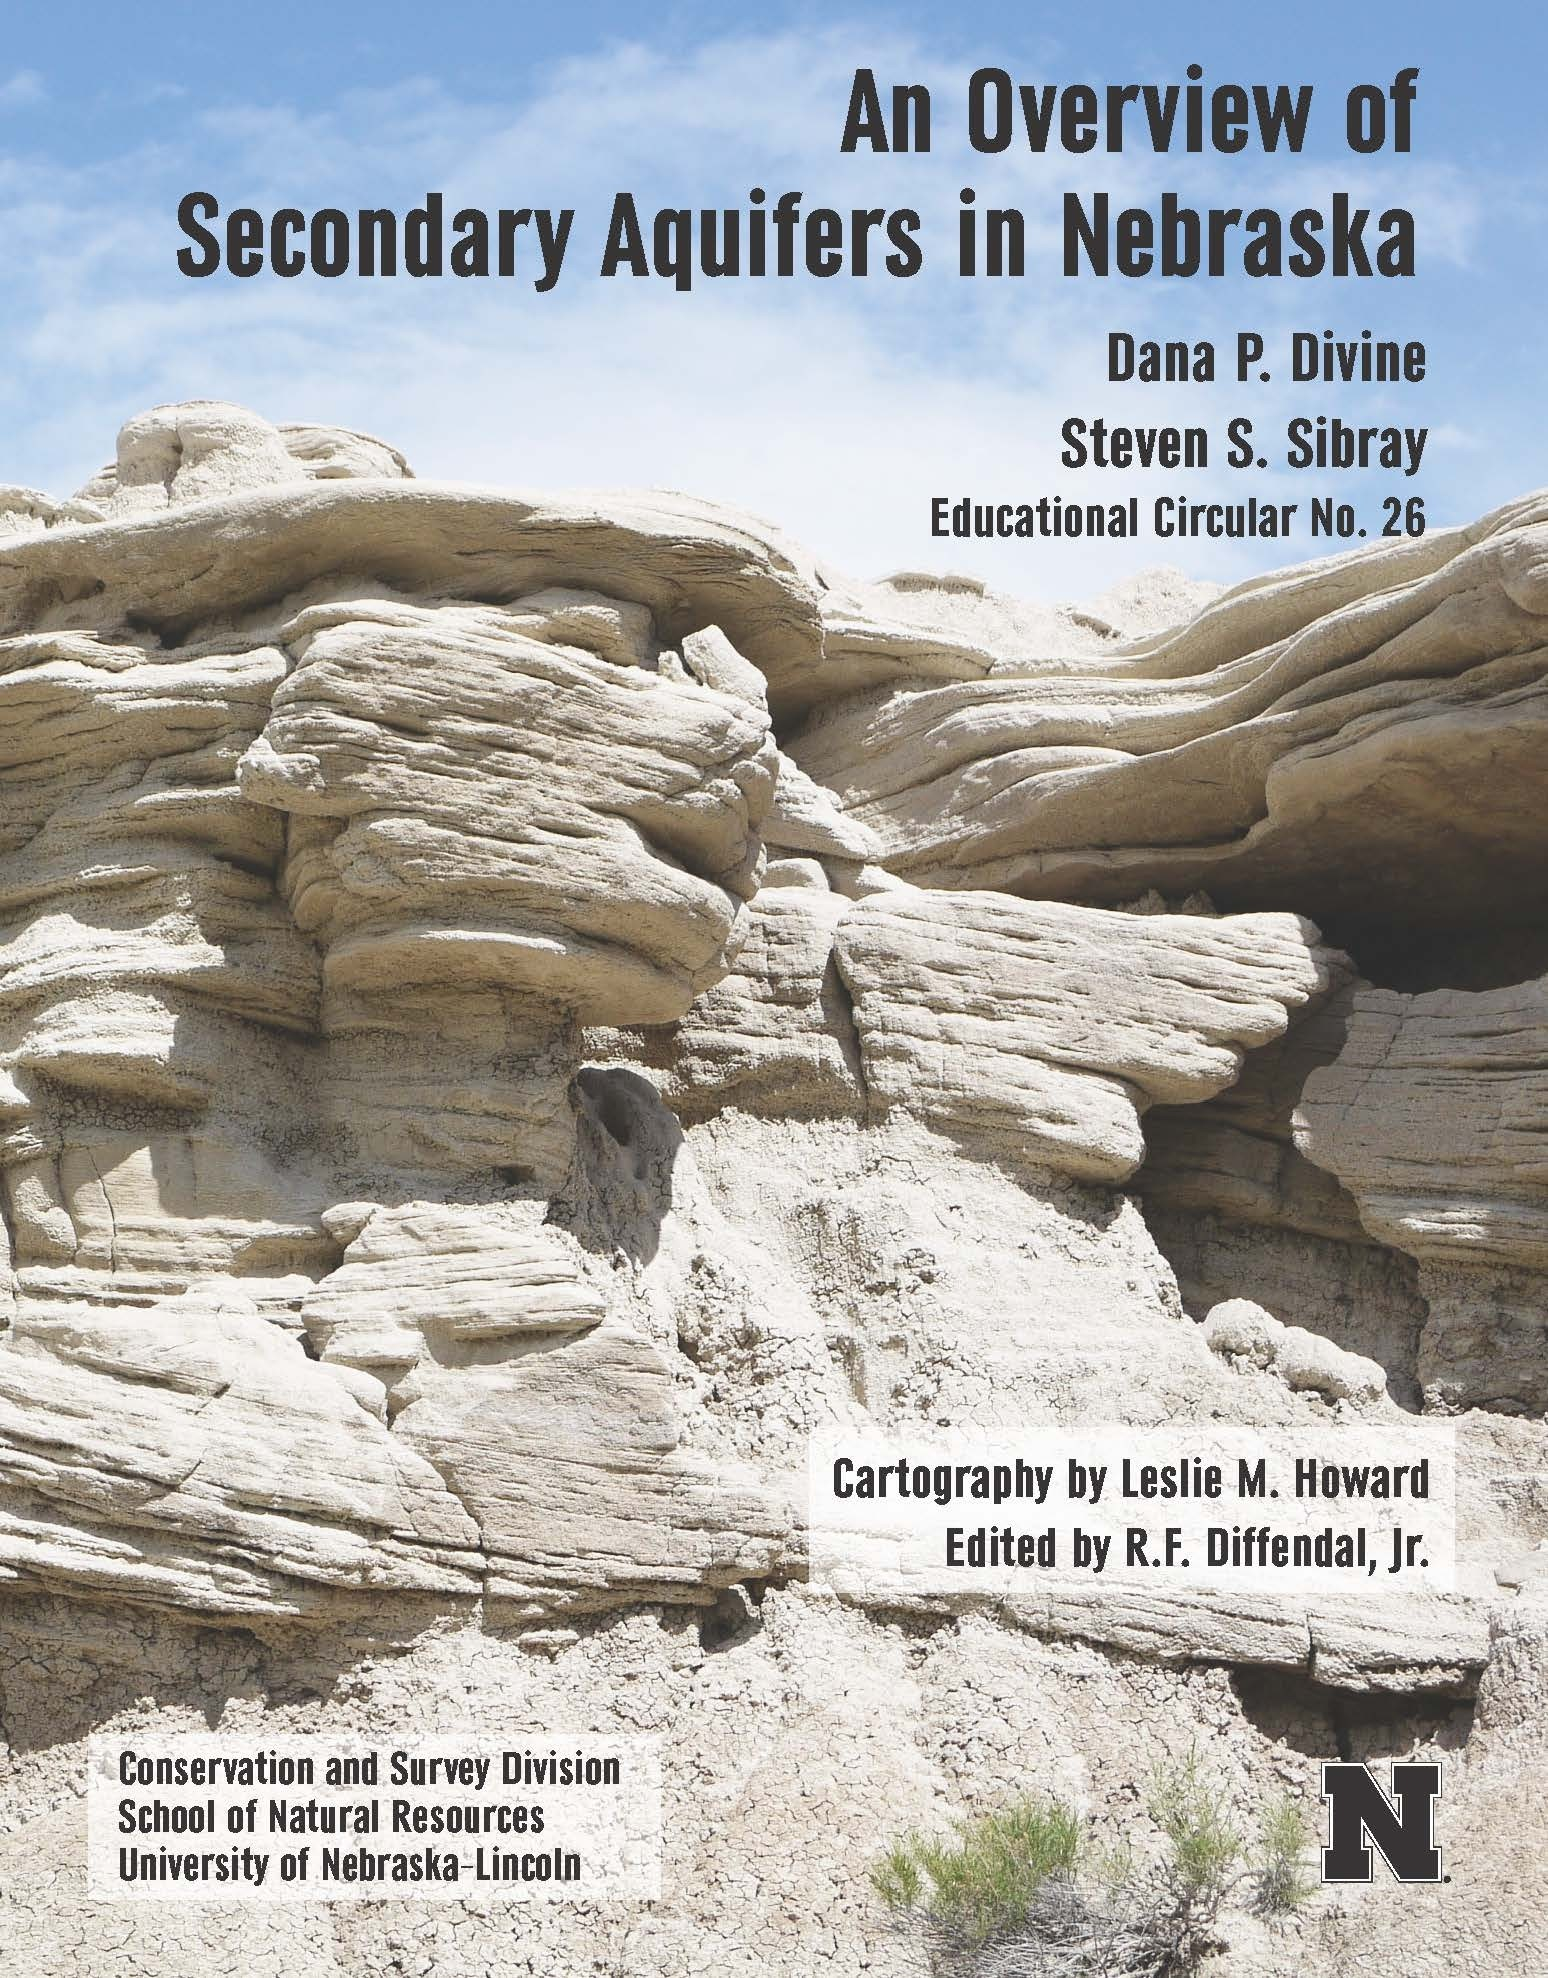 An Overview of Secondary Aquifers in Nebraska (EC-26)